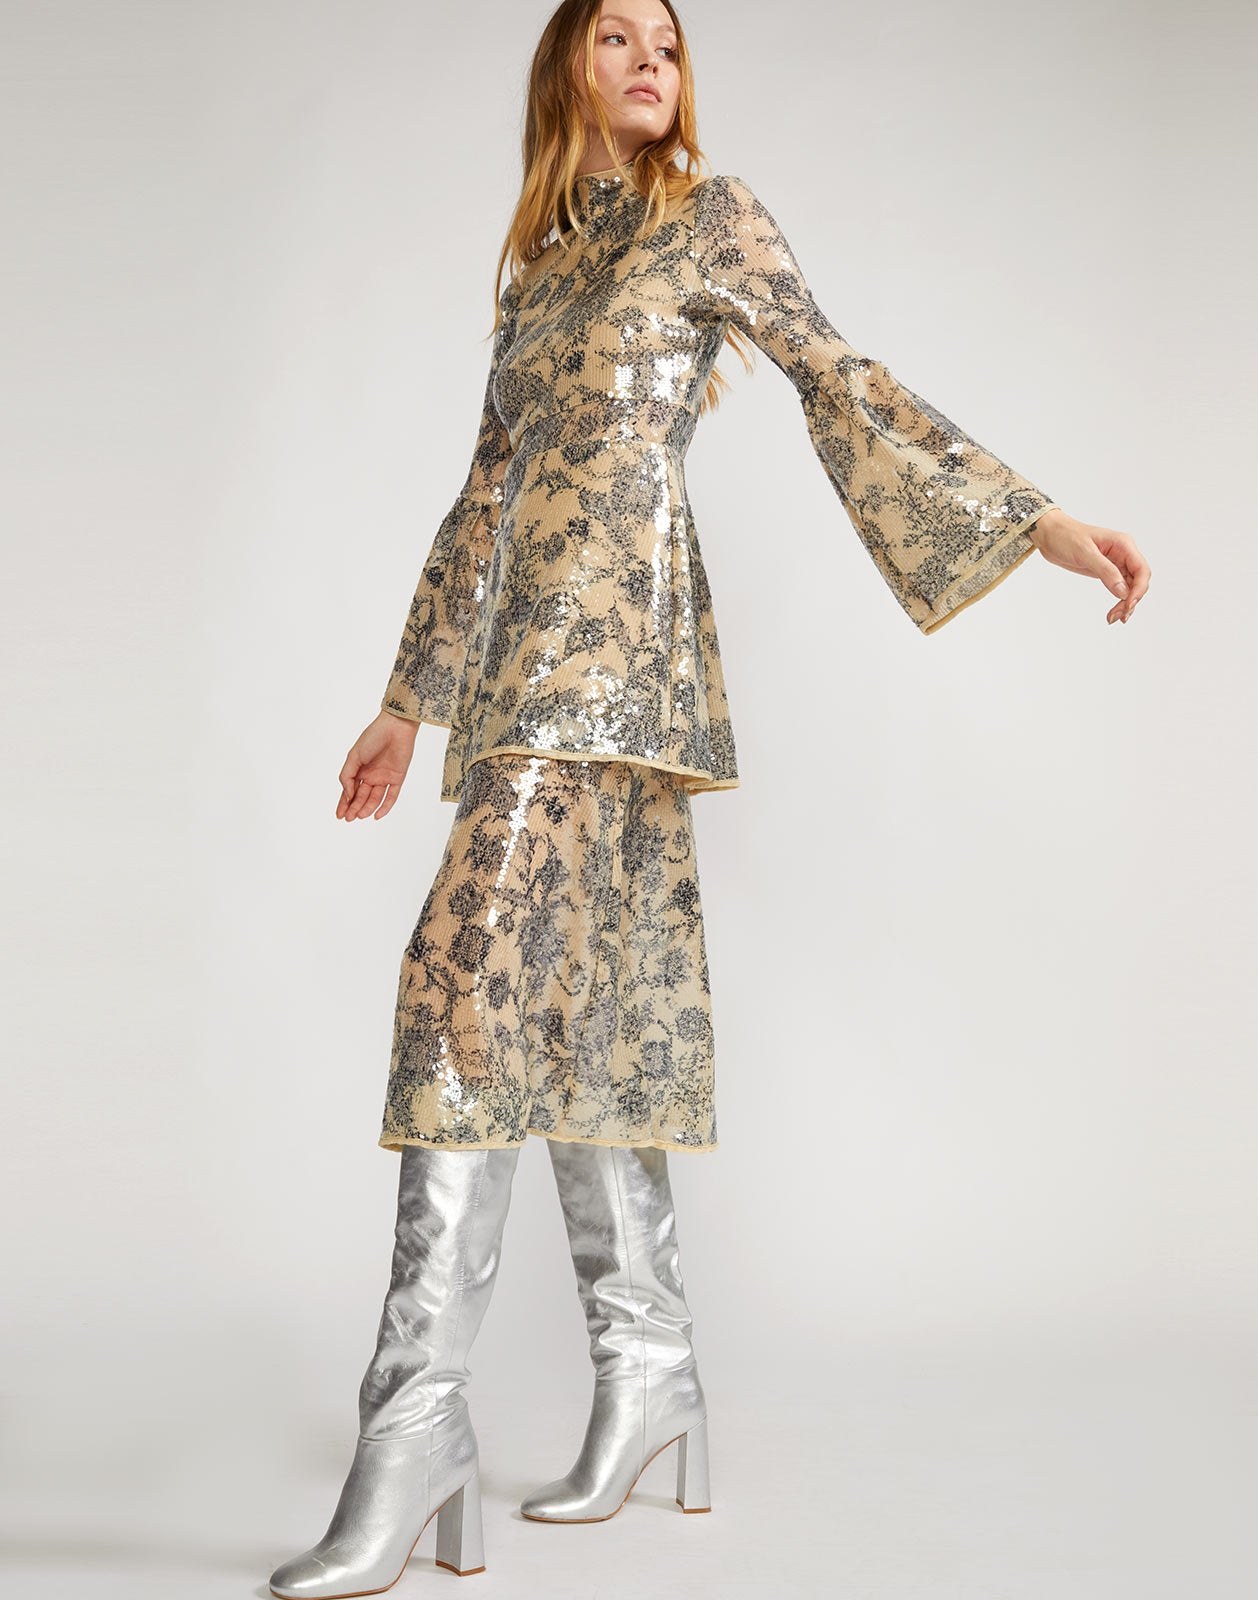 Sequined floral motif dress with long bell sleeves and fitted through waist